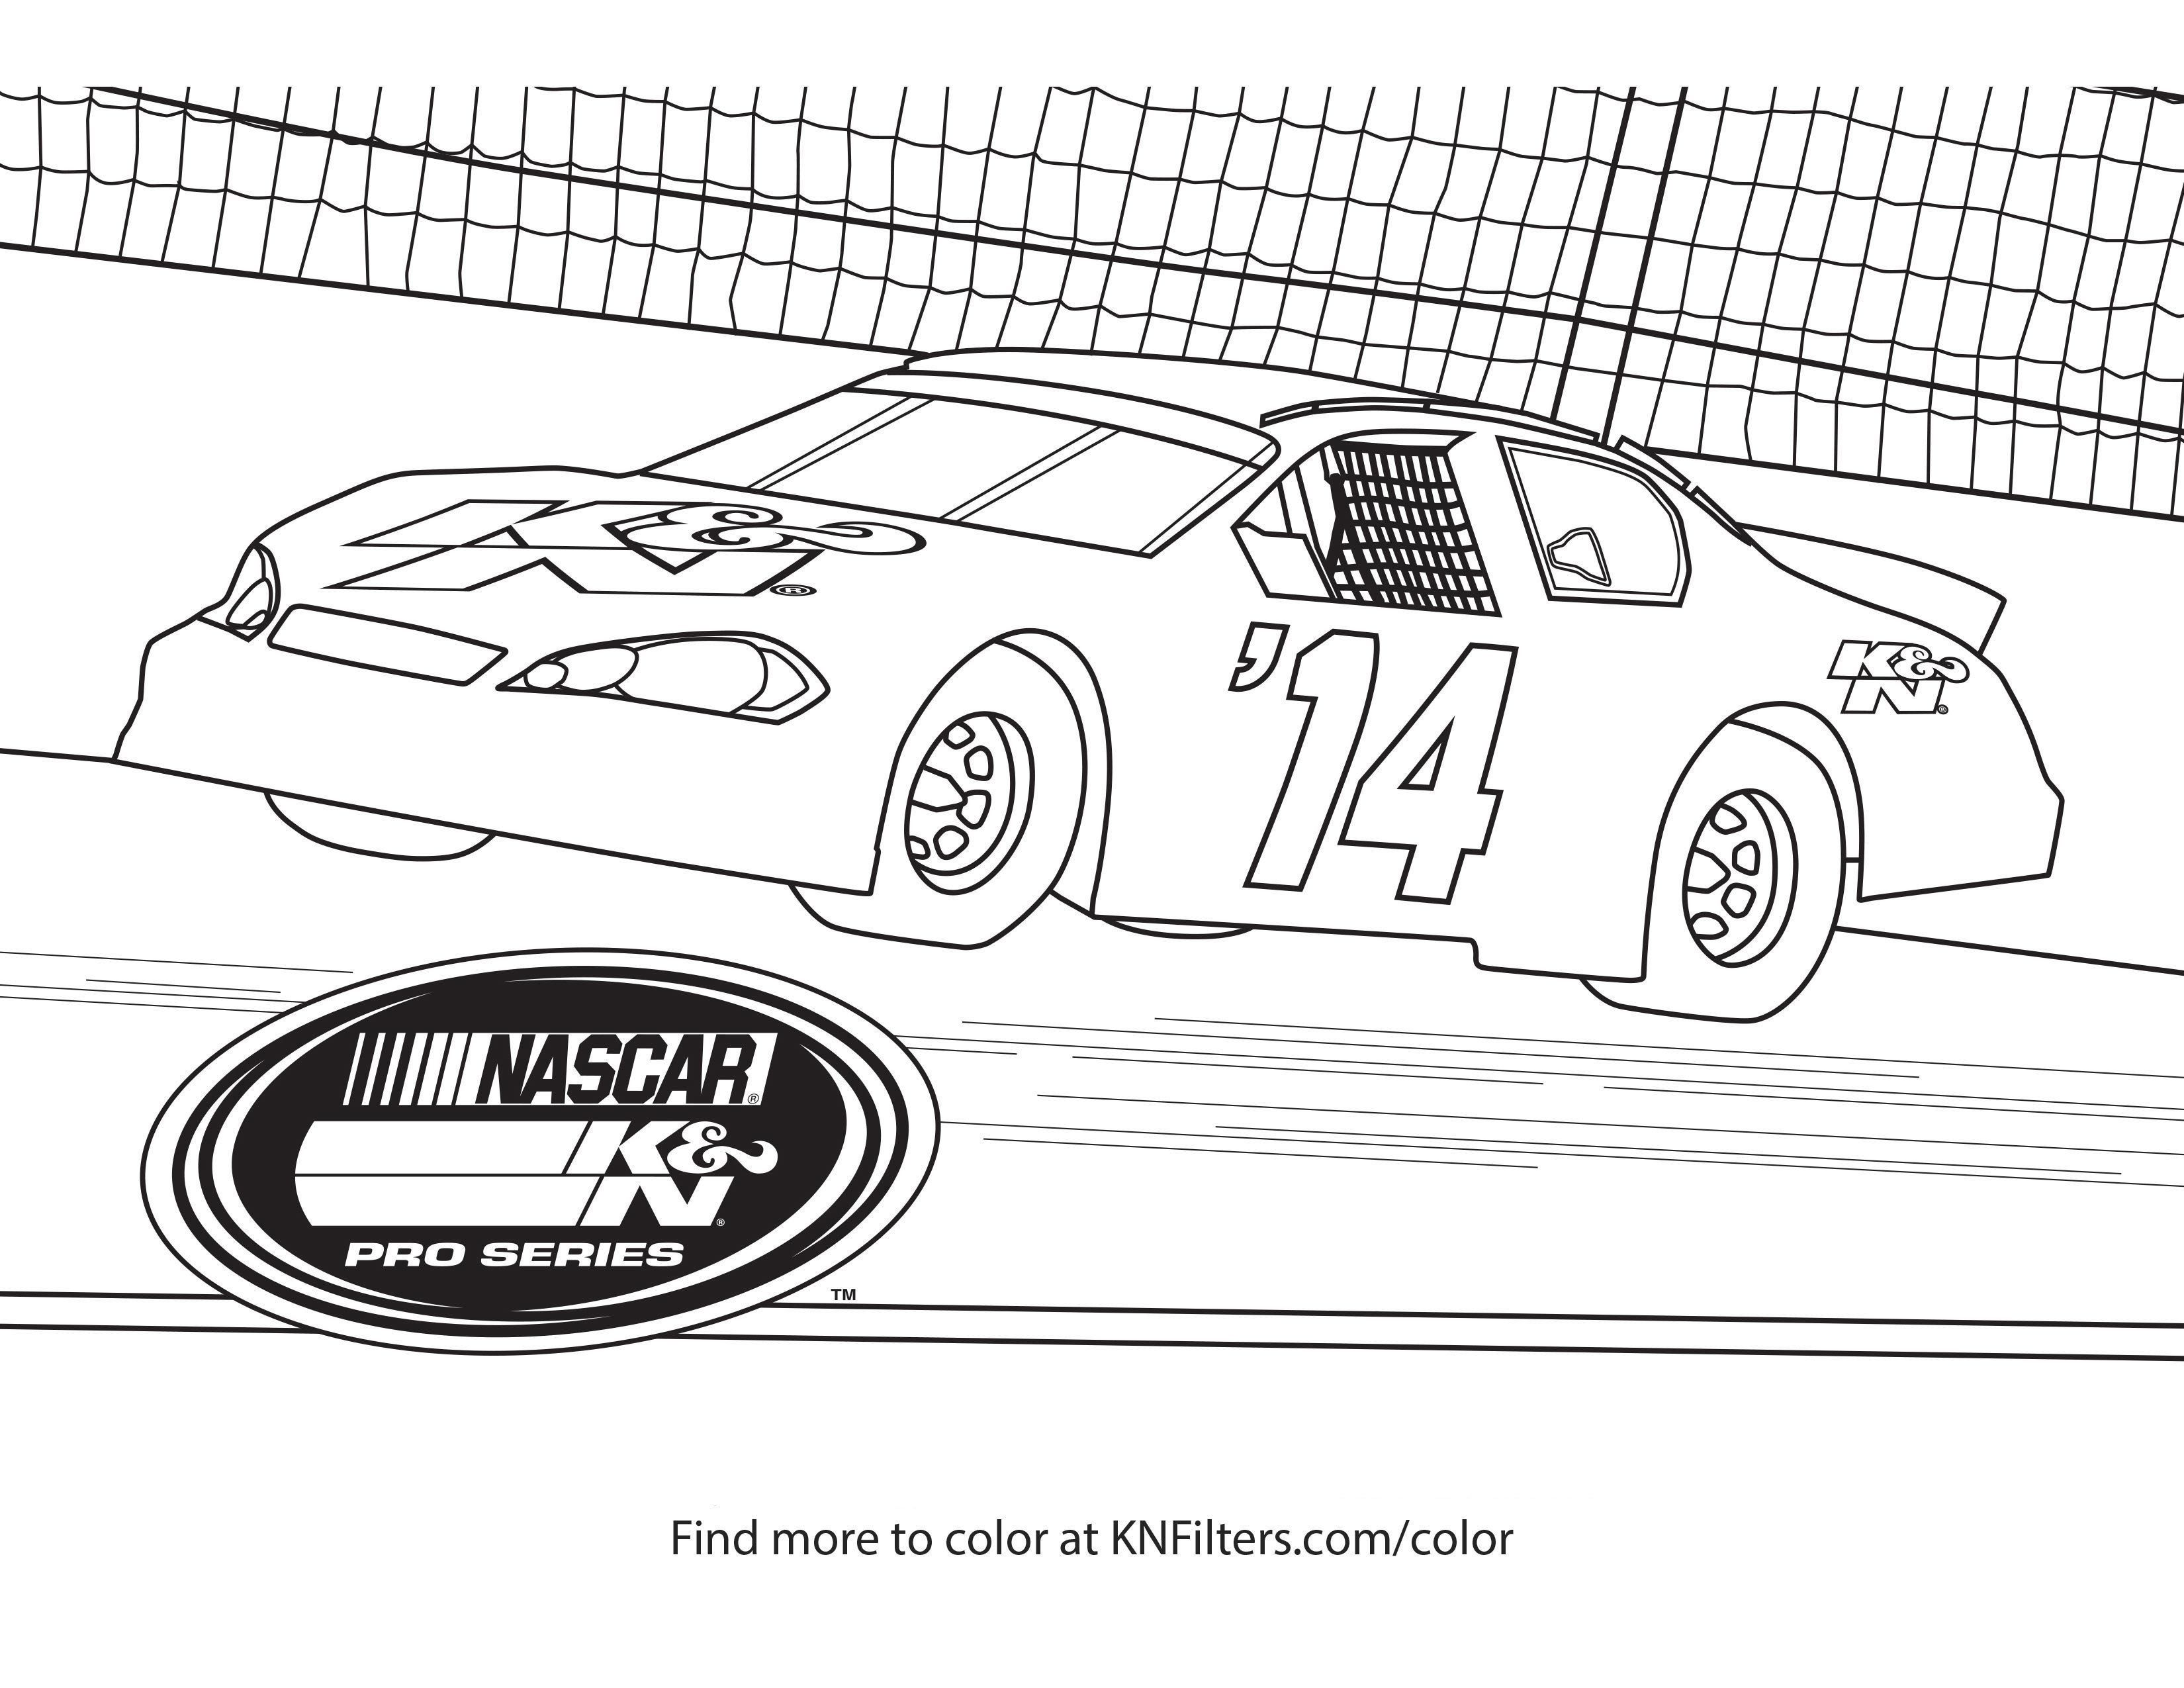 Police Car Coloring Pages Inspirational New Crash Car Coloring Pages Trasporti In 2020 Cars Coloring Pages Race Car Coloring Pages Sports Coloring Pages